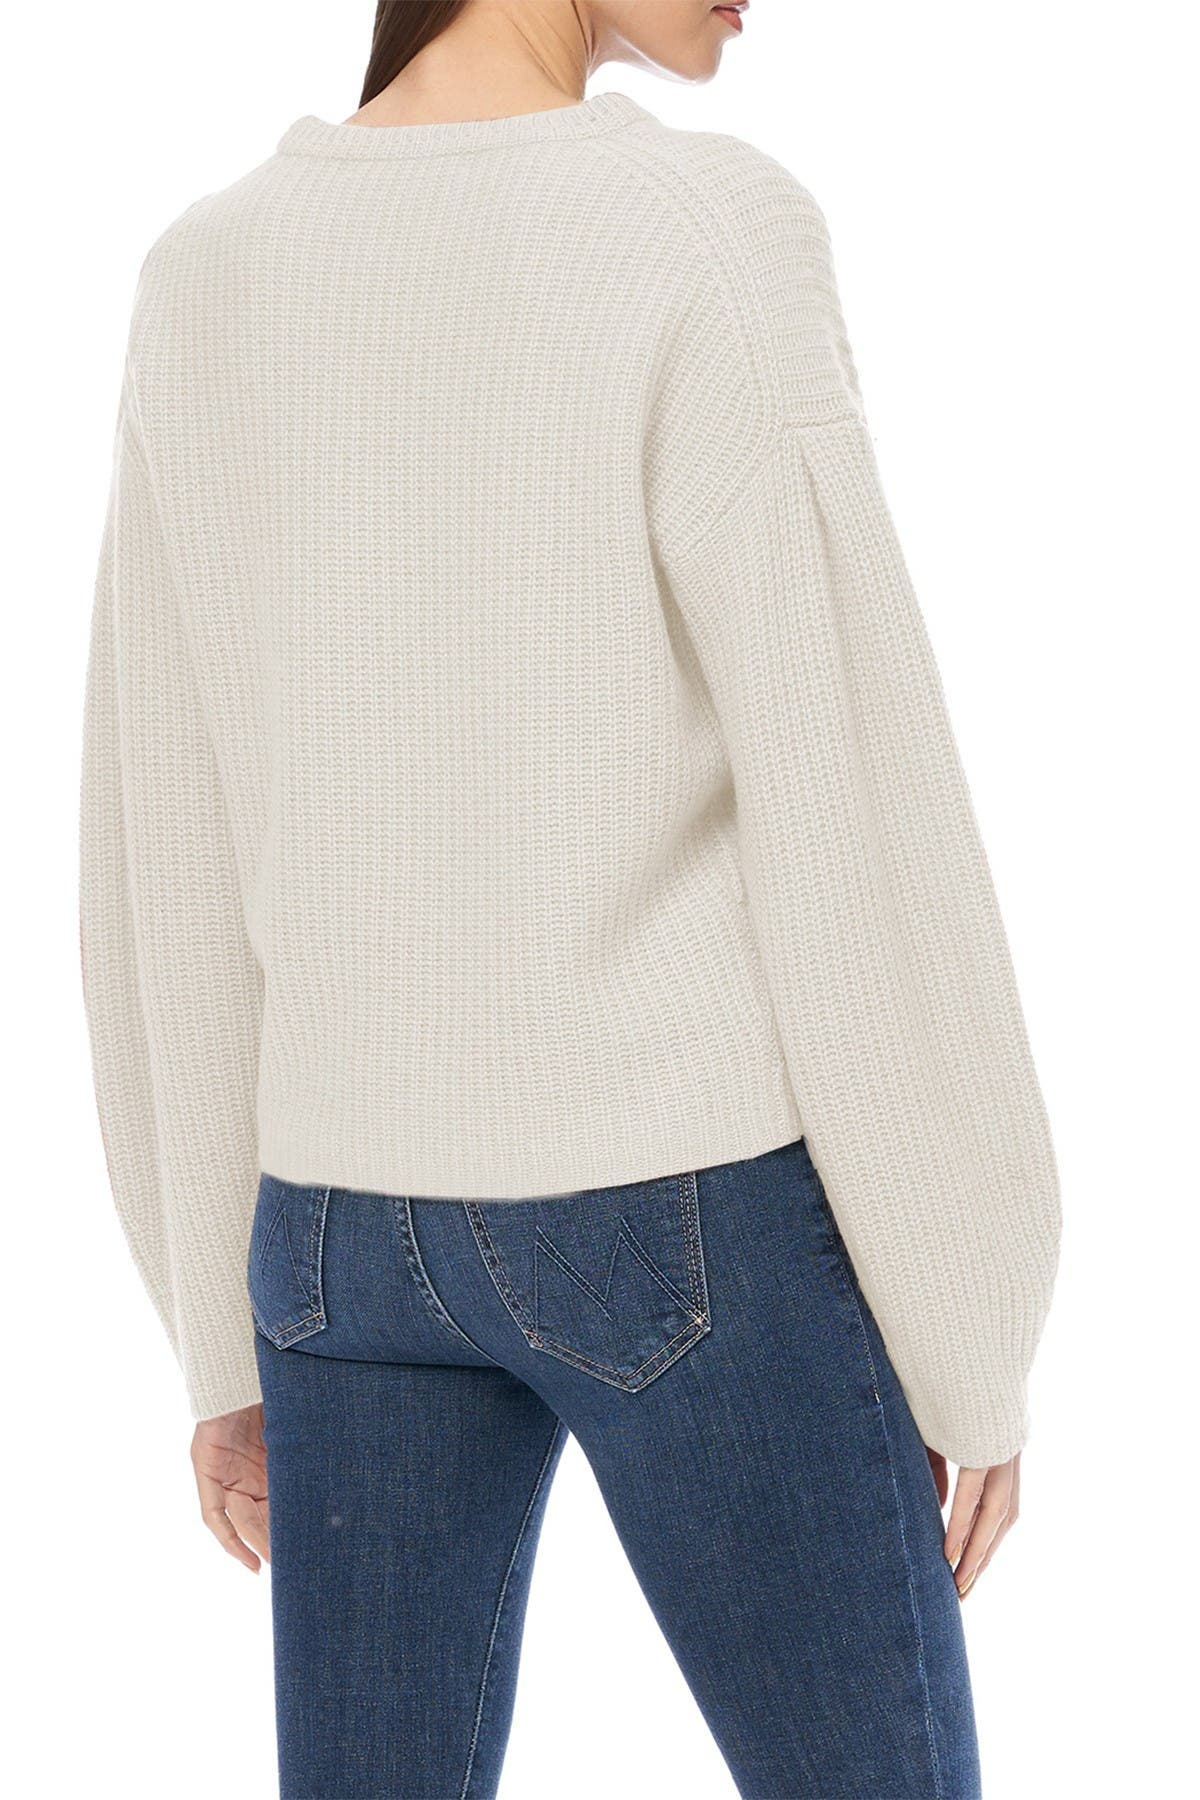 Image of 360 Cashmere Ambrose Crew Neck Sweater